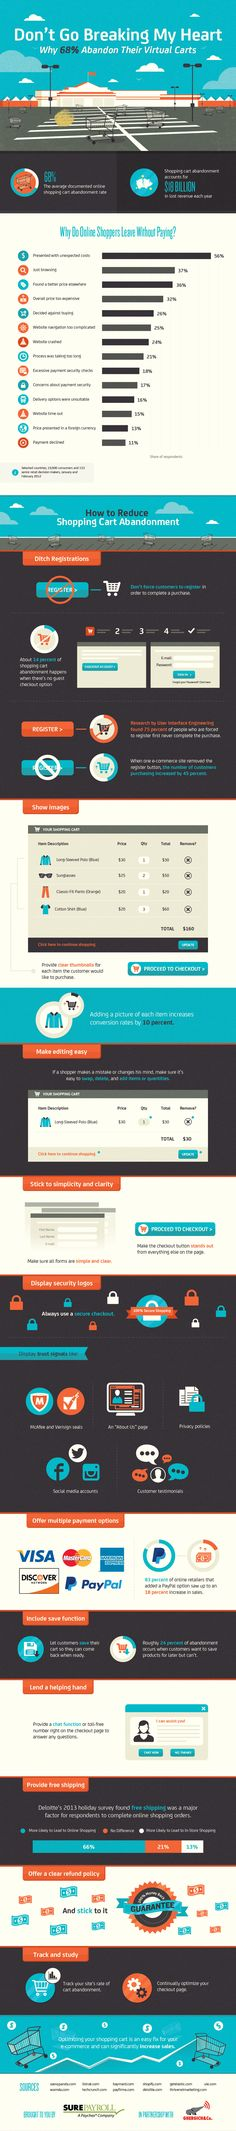 Don't Go Breaking My Heart Why 68% Abandon Their Virtual Carts #infographic #Marketing #Business #Ecommerce